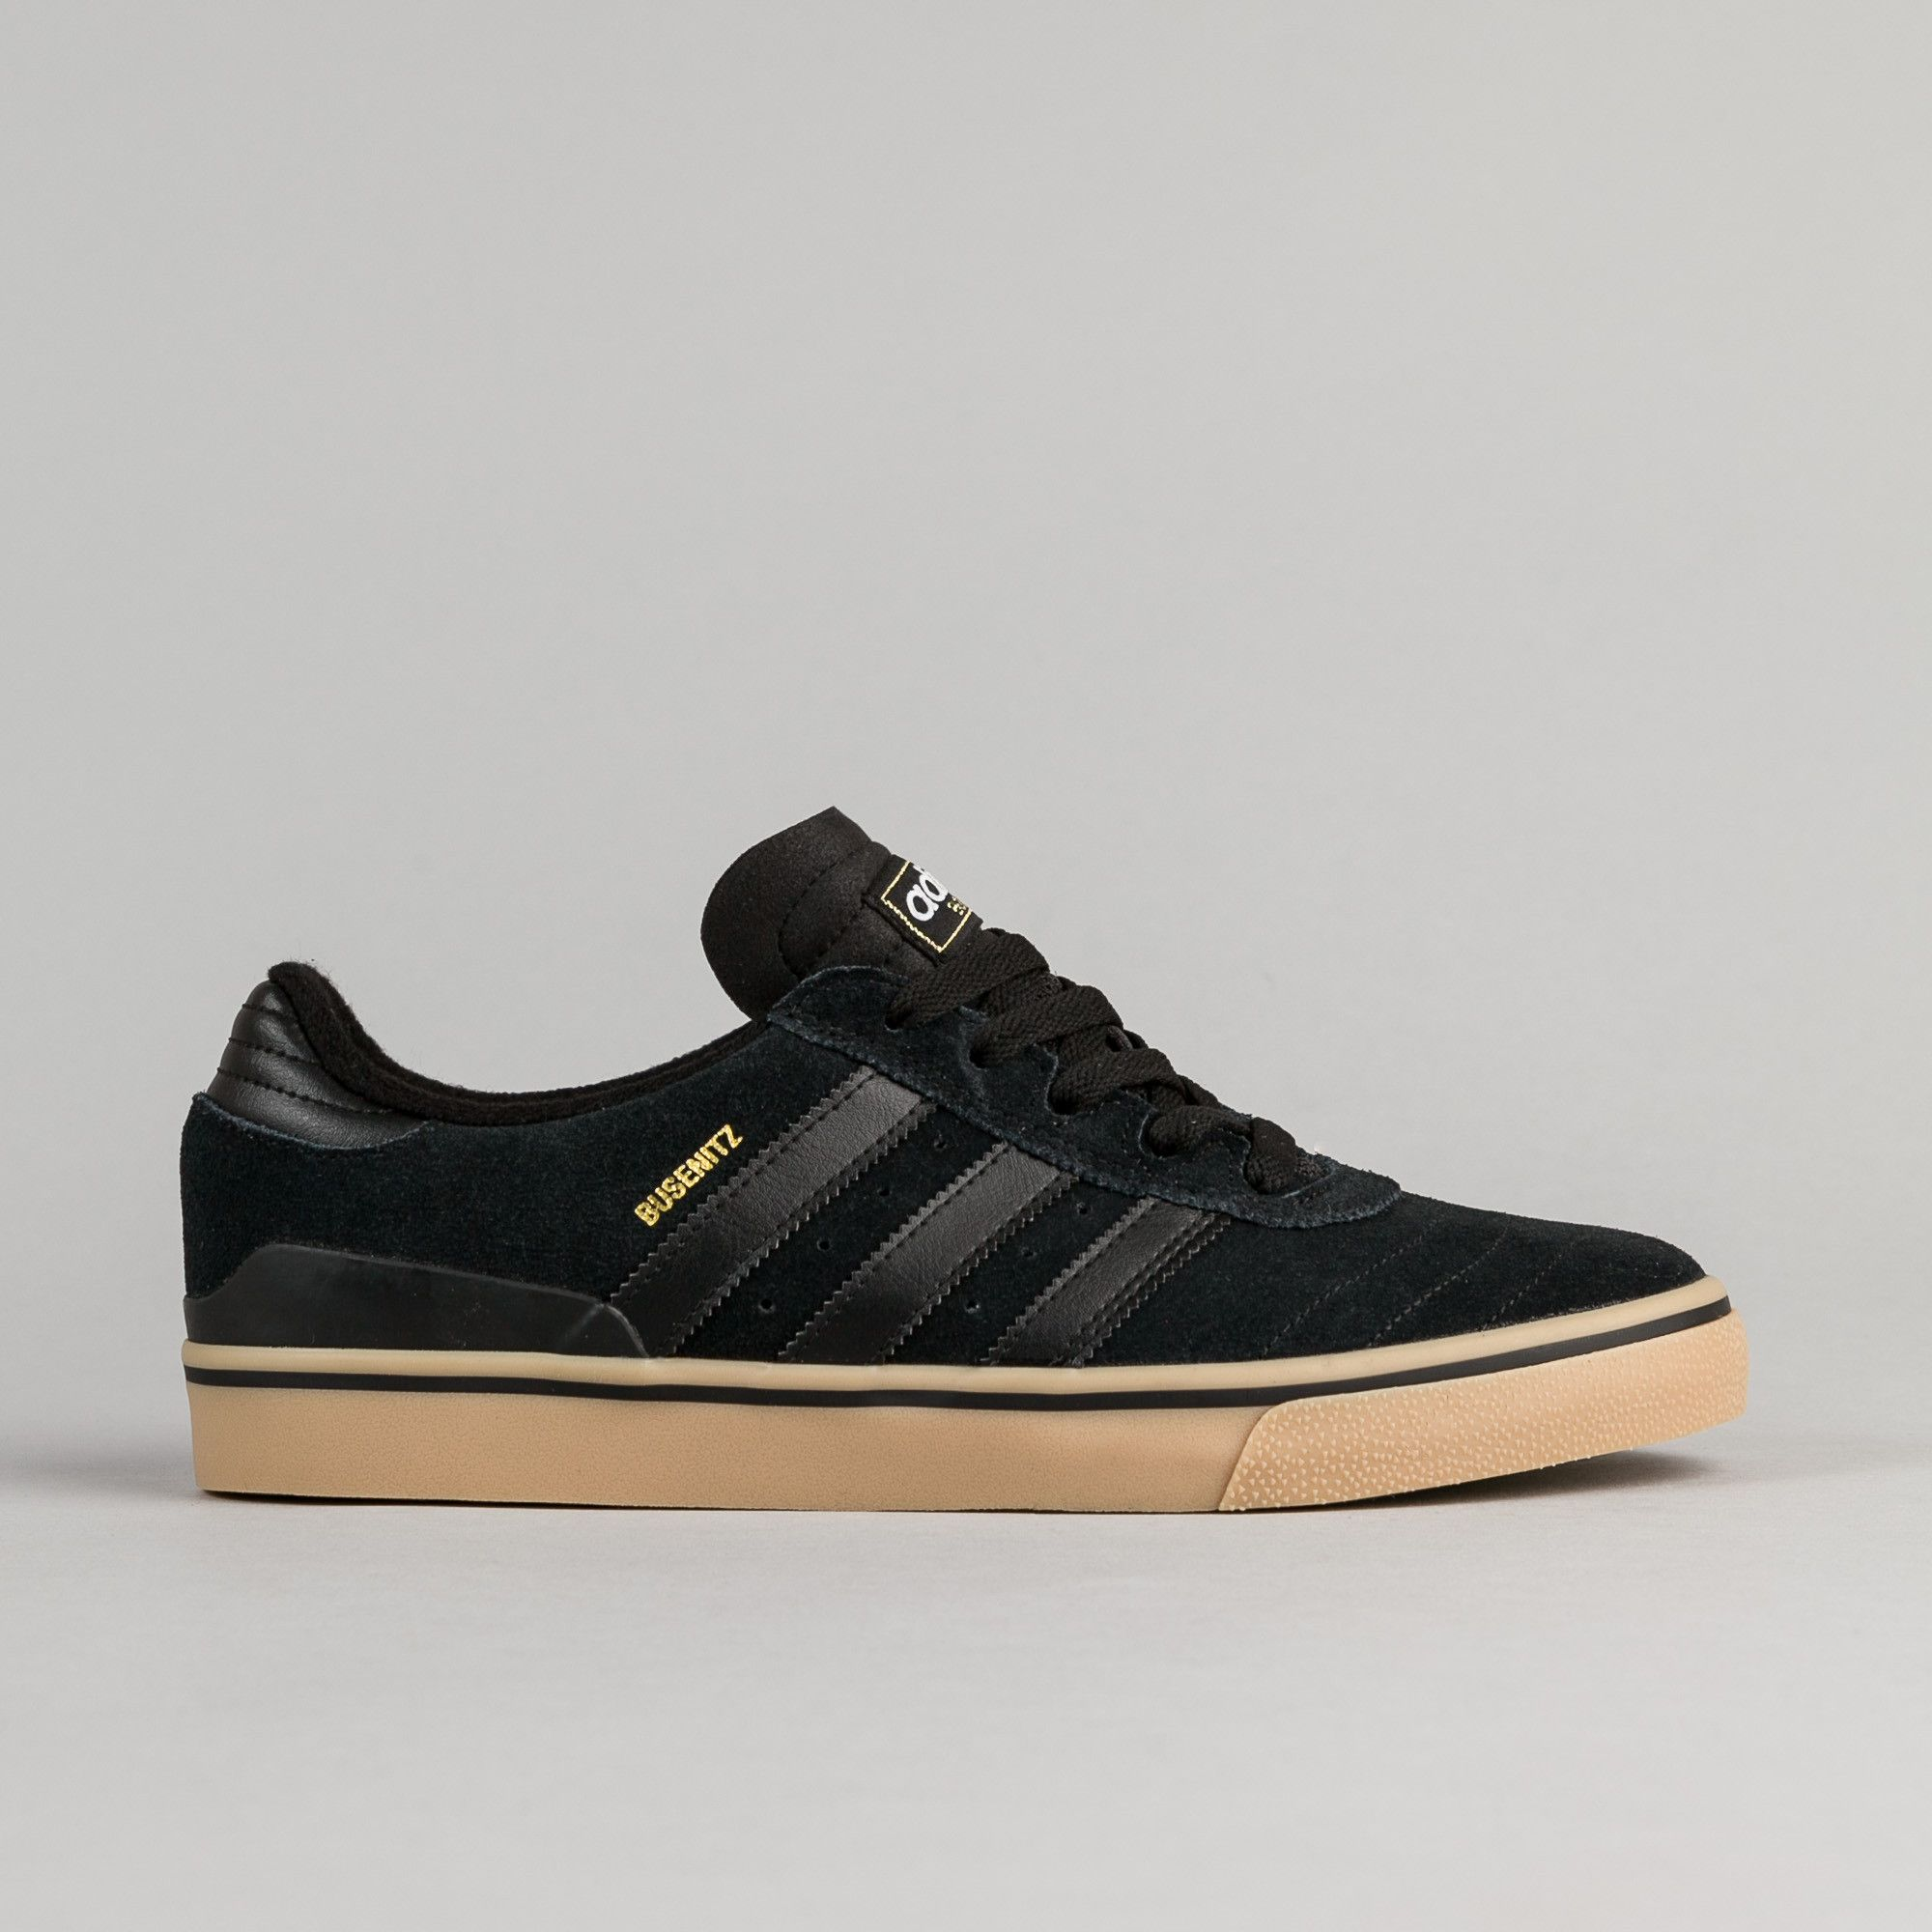 huge selection of 15f60 6780e Free Shipping   Free Returns   Shop the Adidas Busenitz Vulc ADV Shoes in Core  Black and Core Black   Gum at Flatspot, premium skateboard store since 1995.